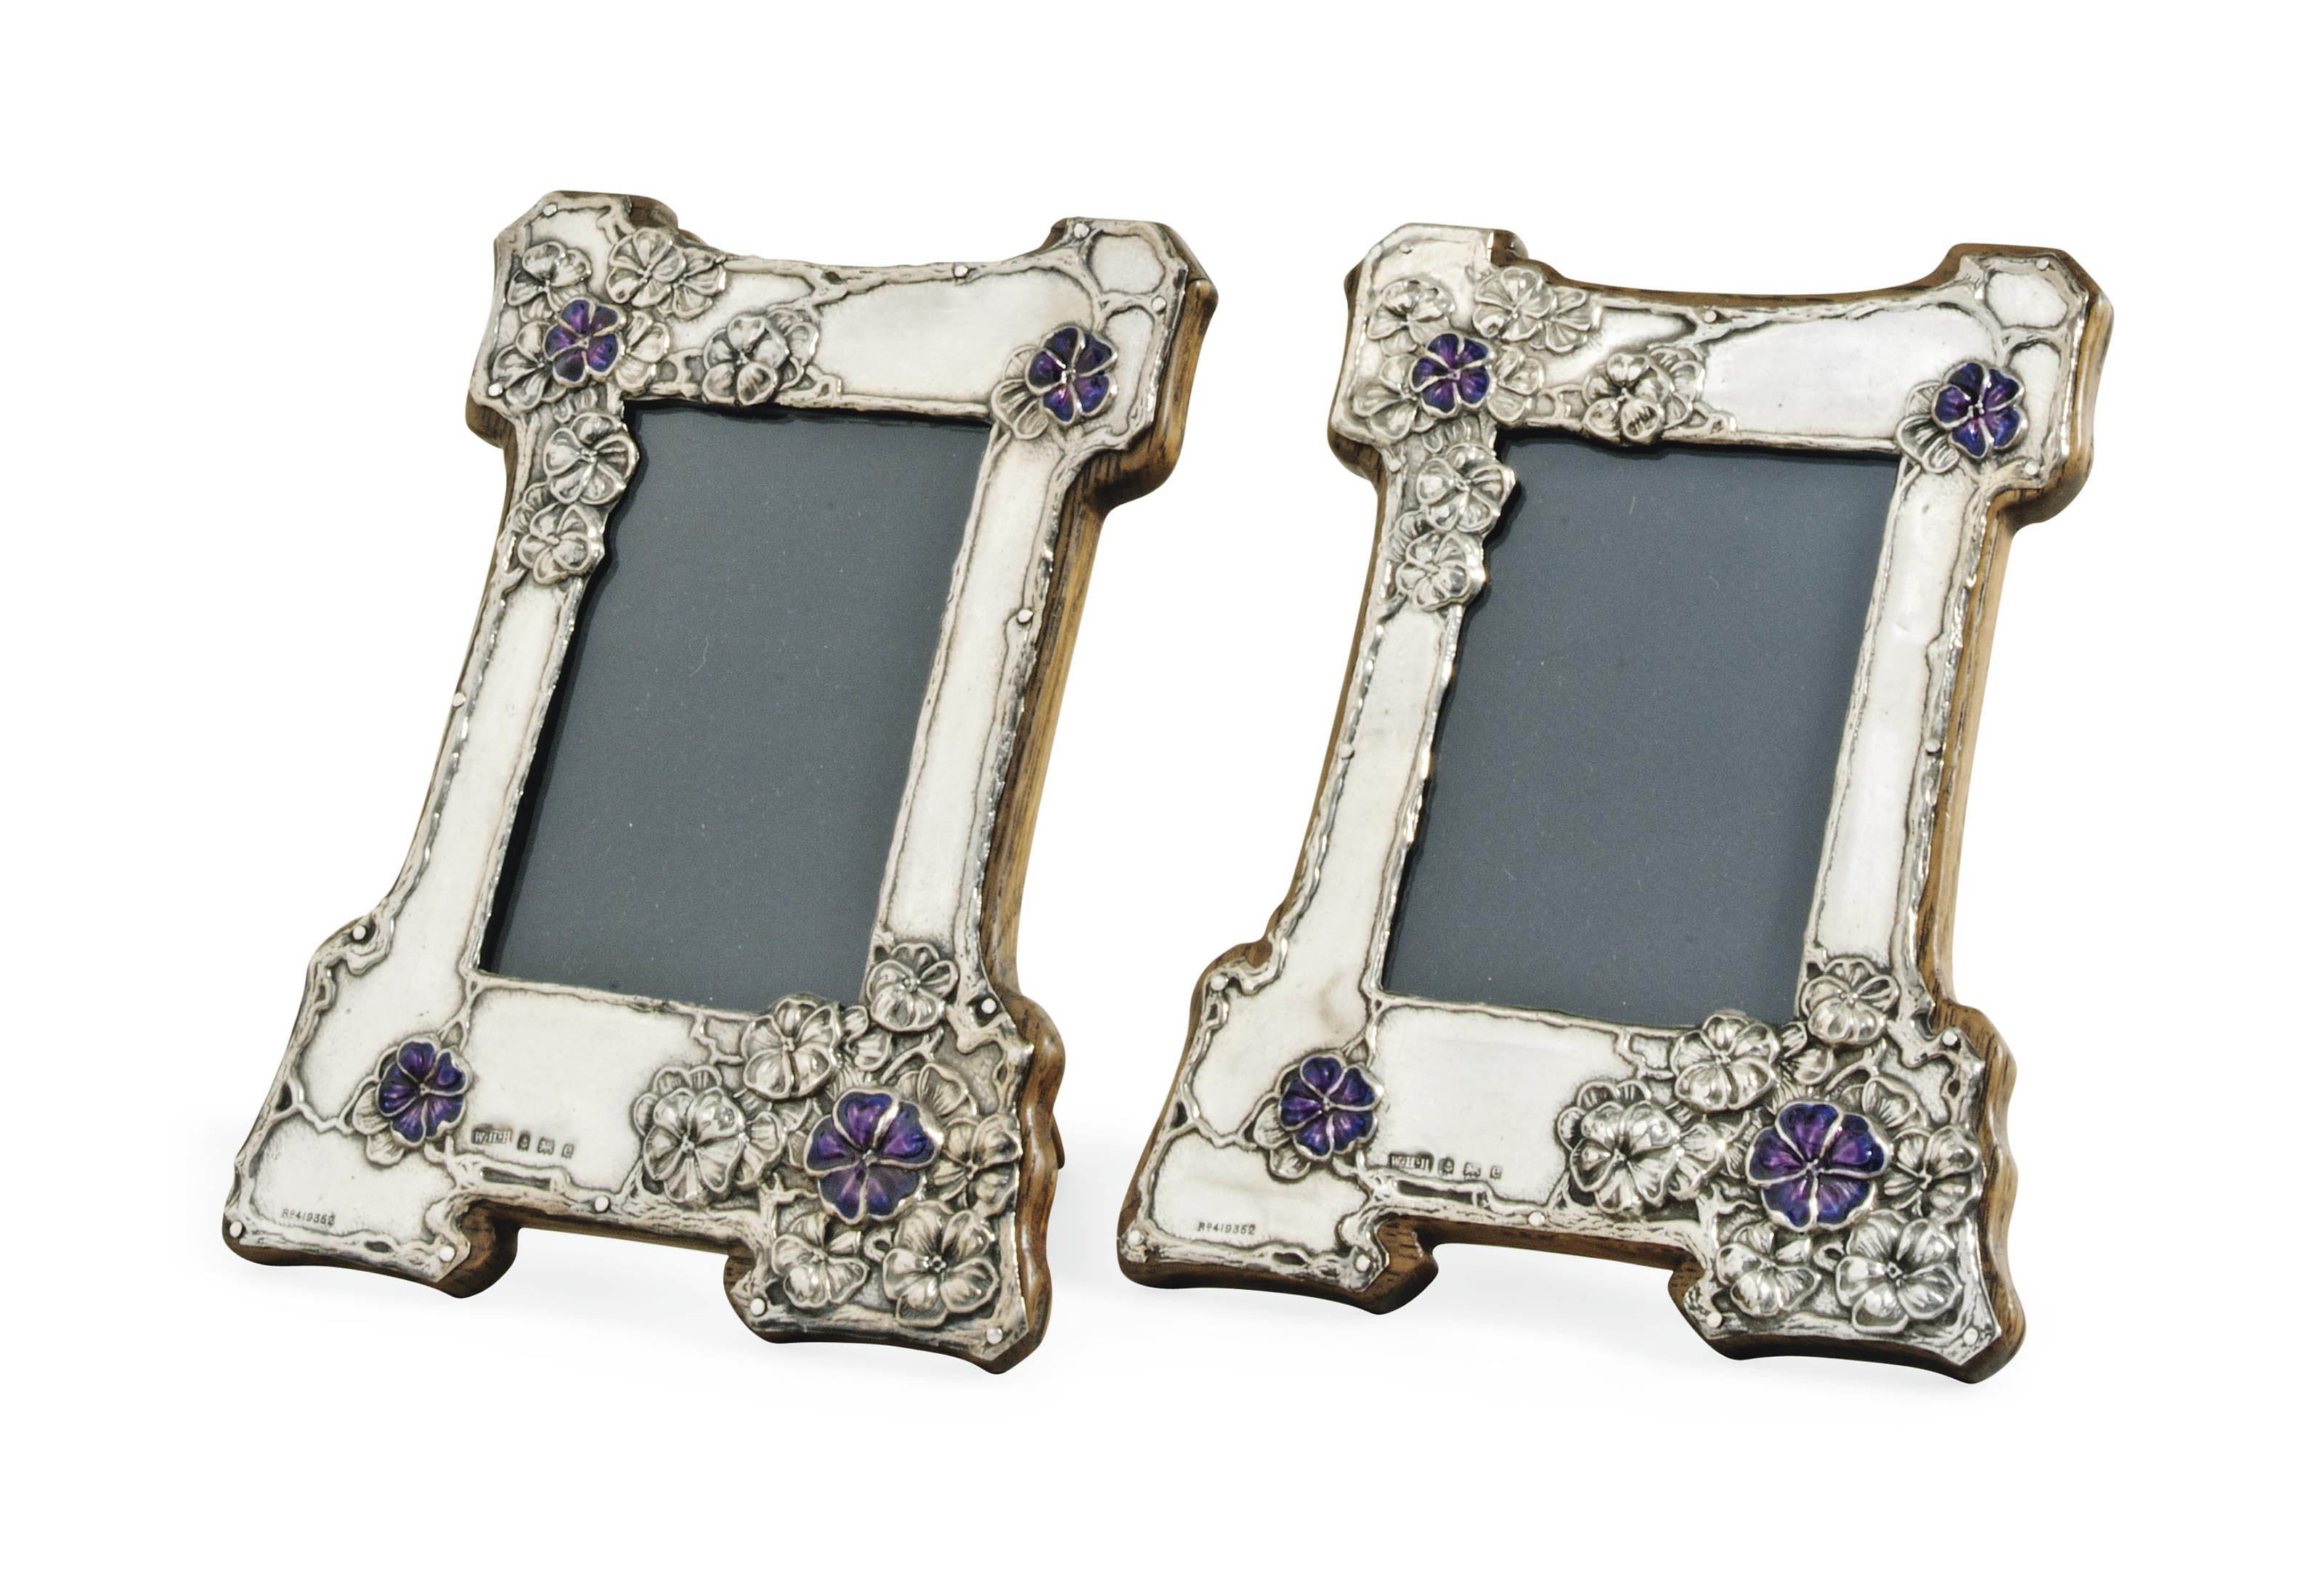 A PAIR OF W.H. HASLER SILVER AND ENAMEL PICTURE FRAMES